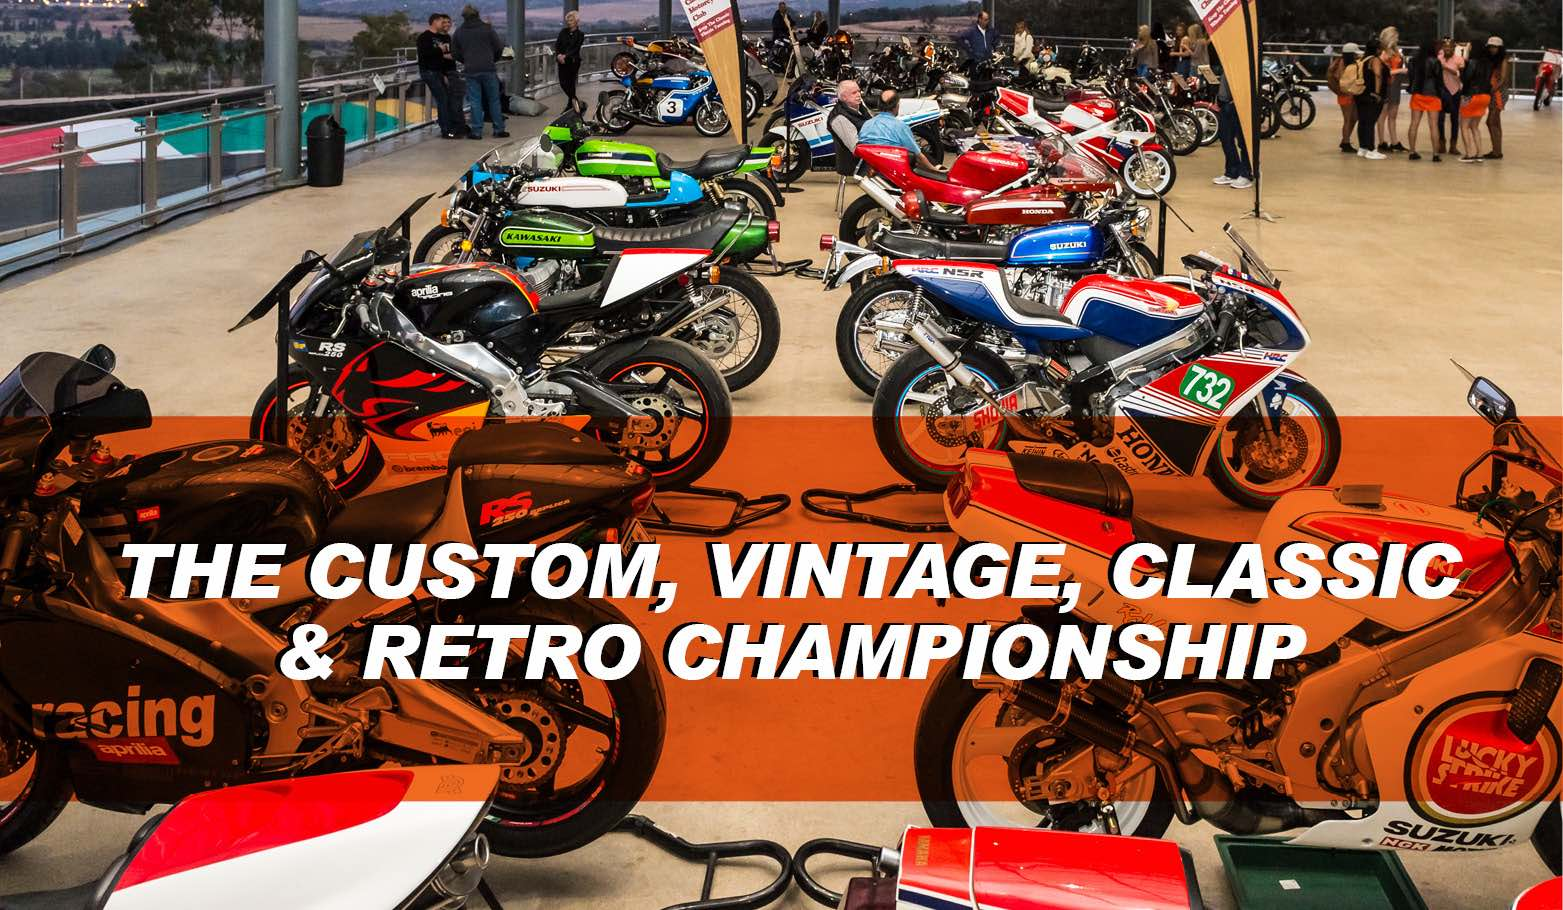 The RocoMamas The Custom, Vintage, Classic and Retro Motorcycle Championship at SA Bike Fest